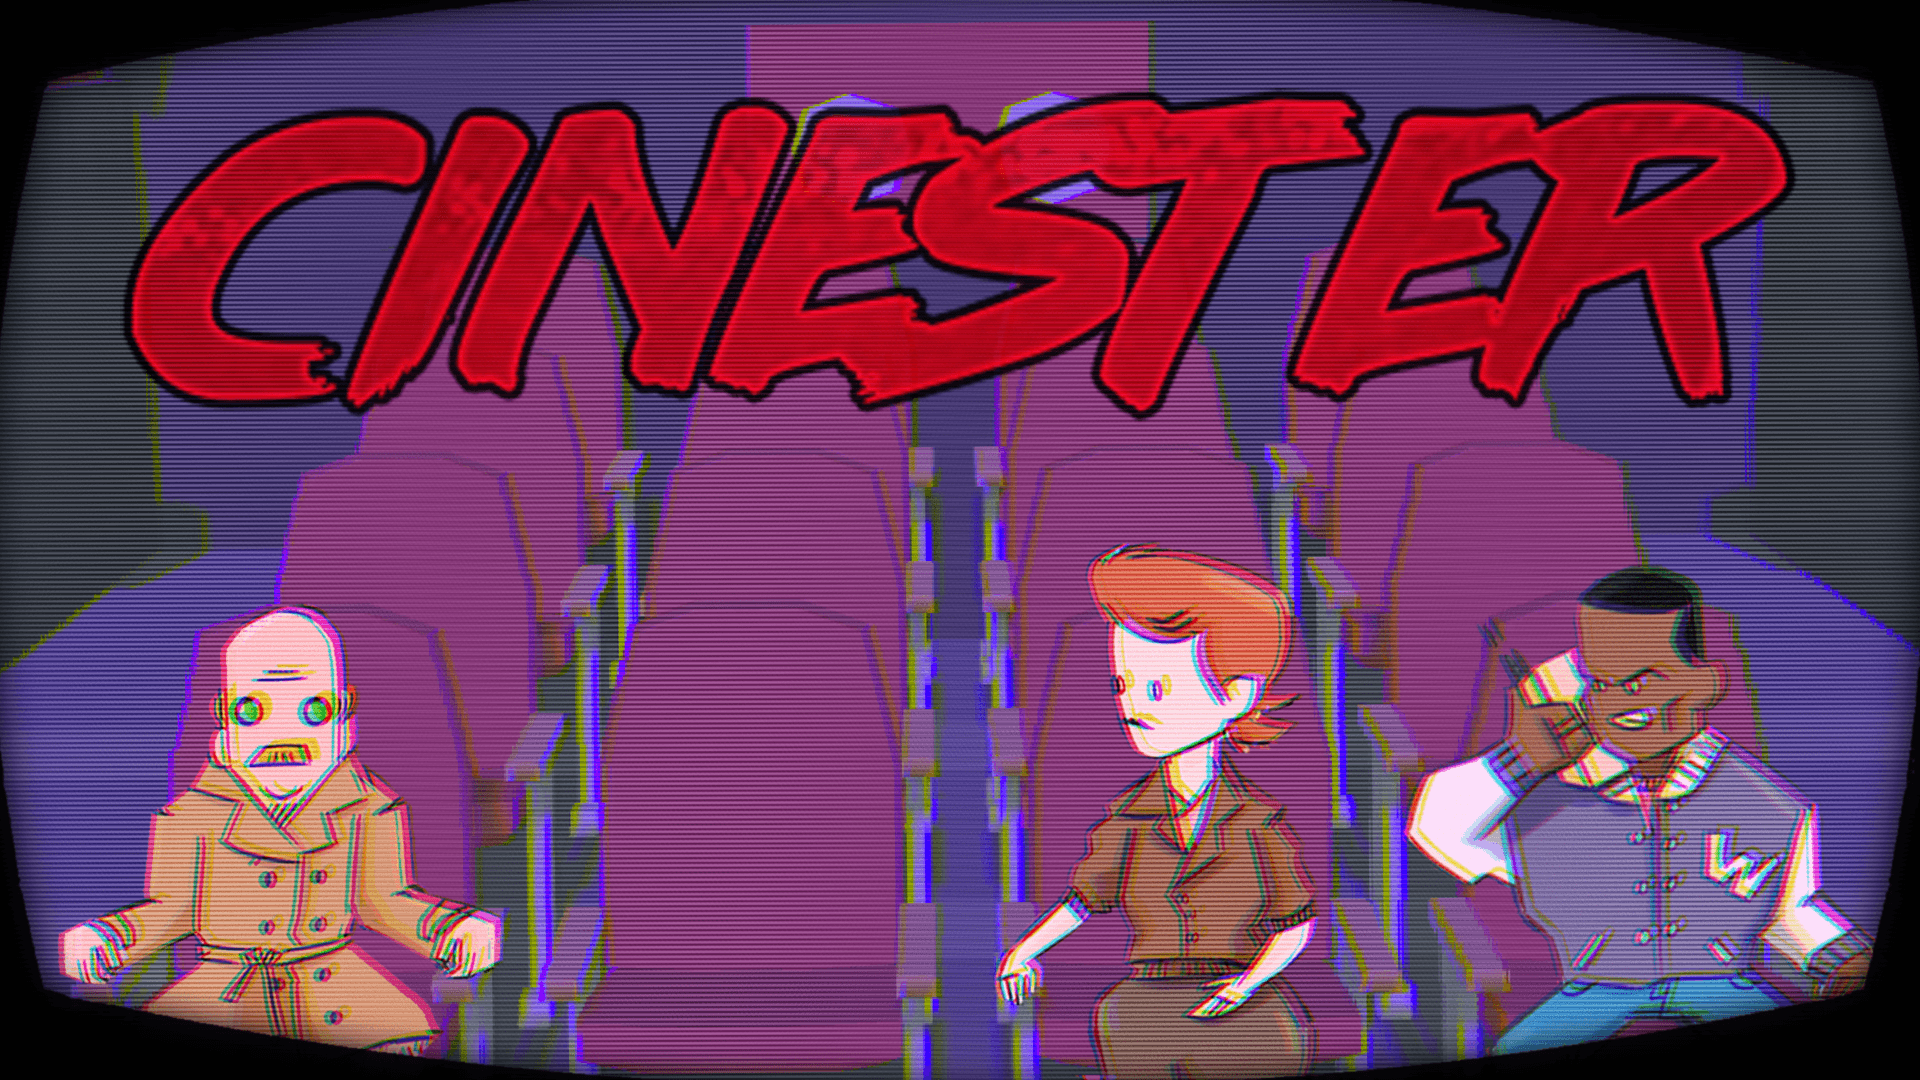 Cinester - key art image for our Global Game Jam 2018 entry about a 'sinister cinema'